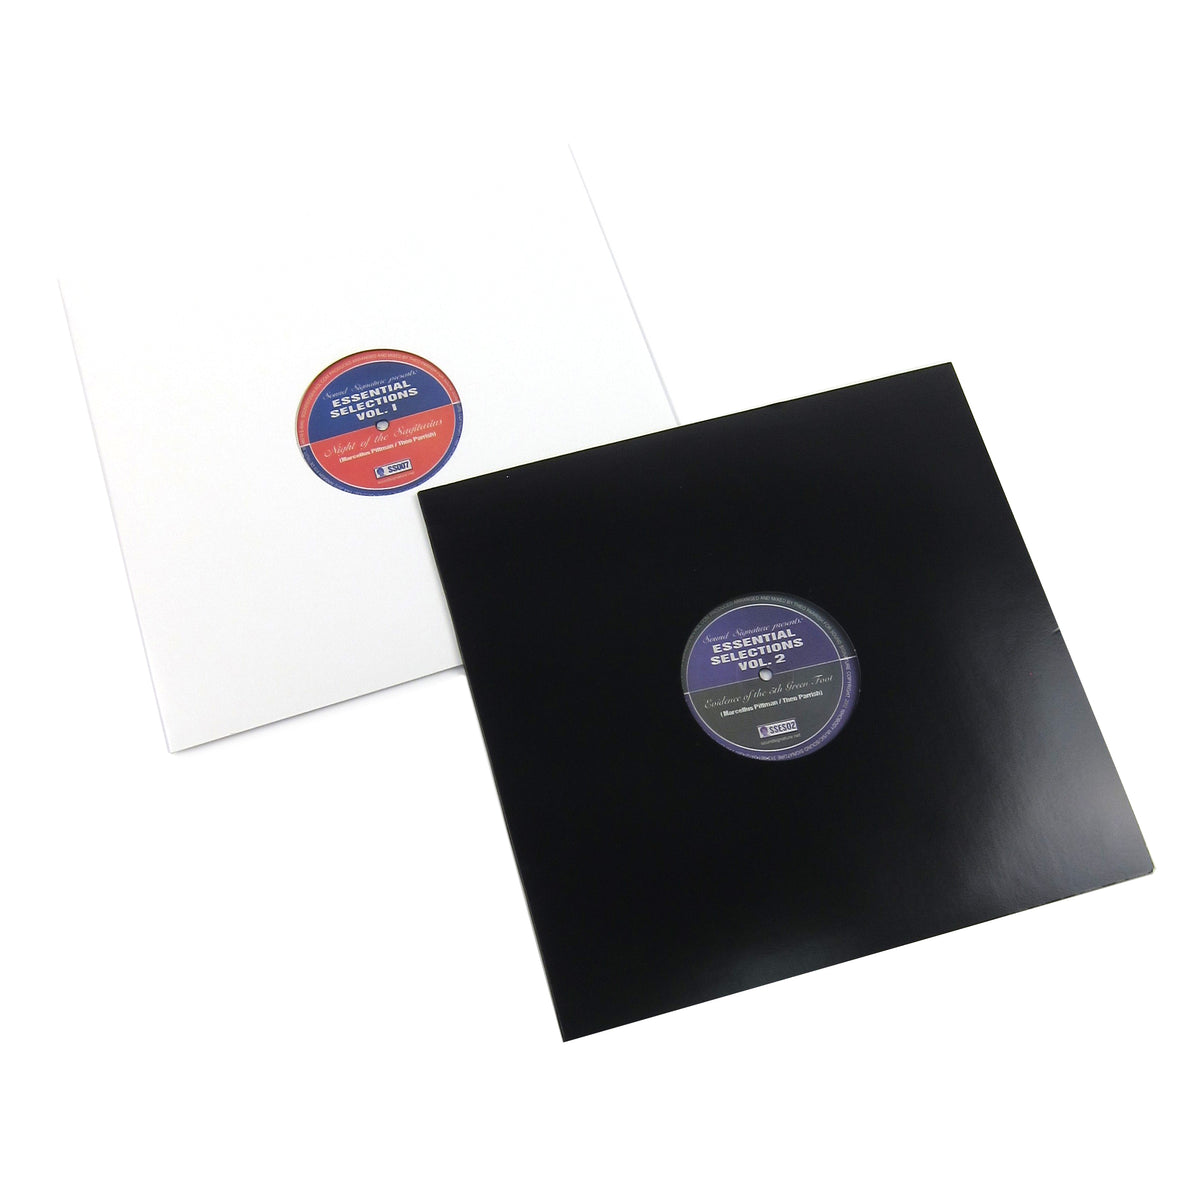 "Theo Parrish & Marcellus Pittman: Essential Selections Vol.1+2 Vinyl 12"" Pack"